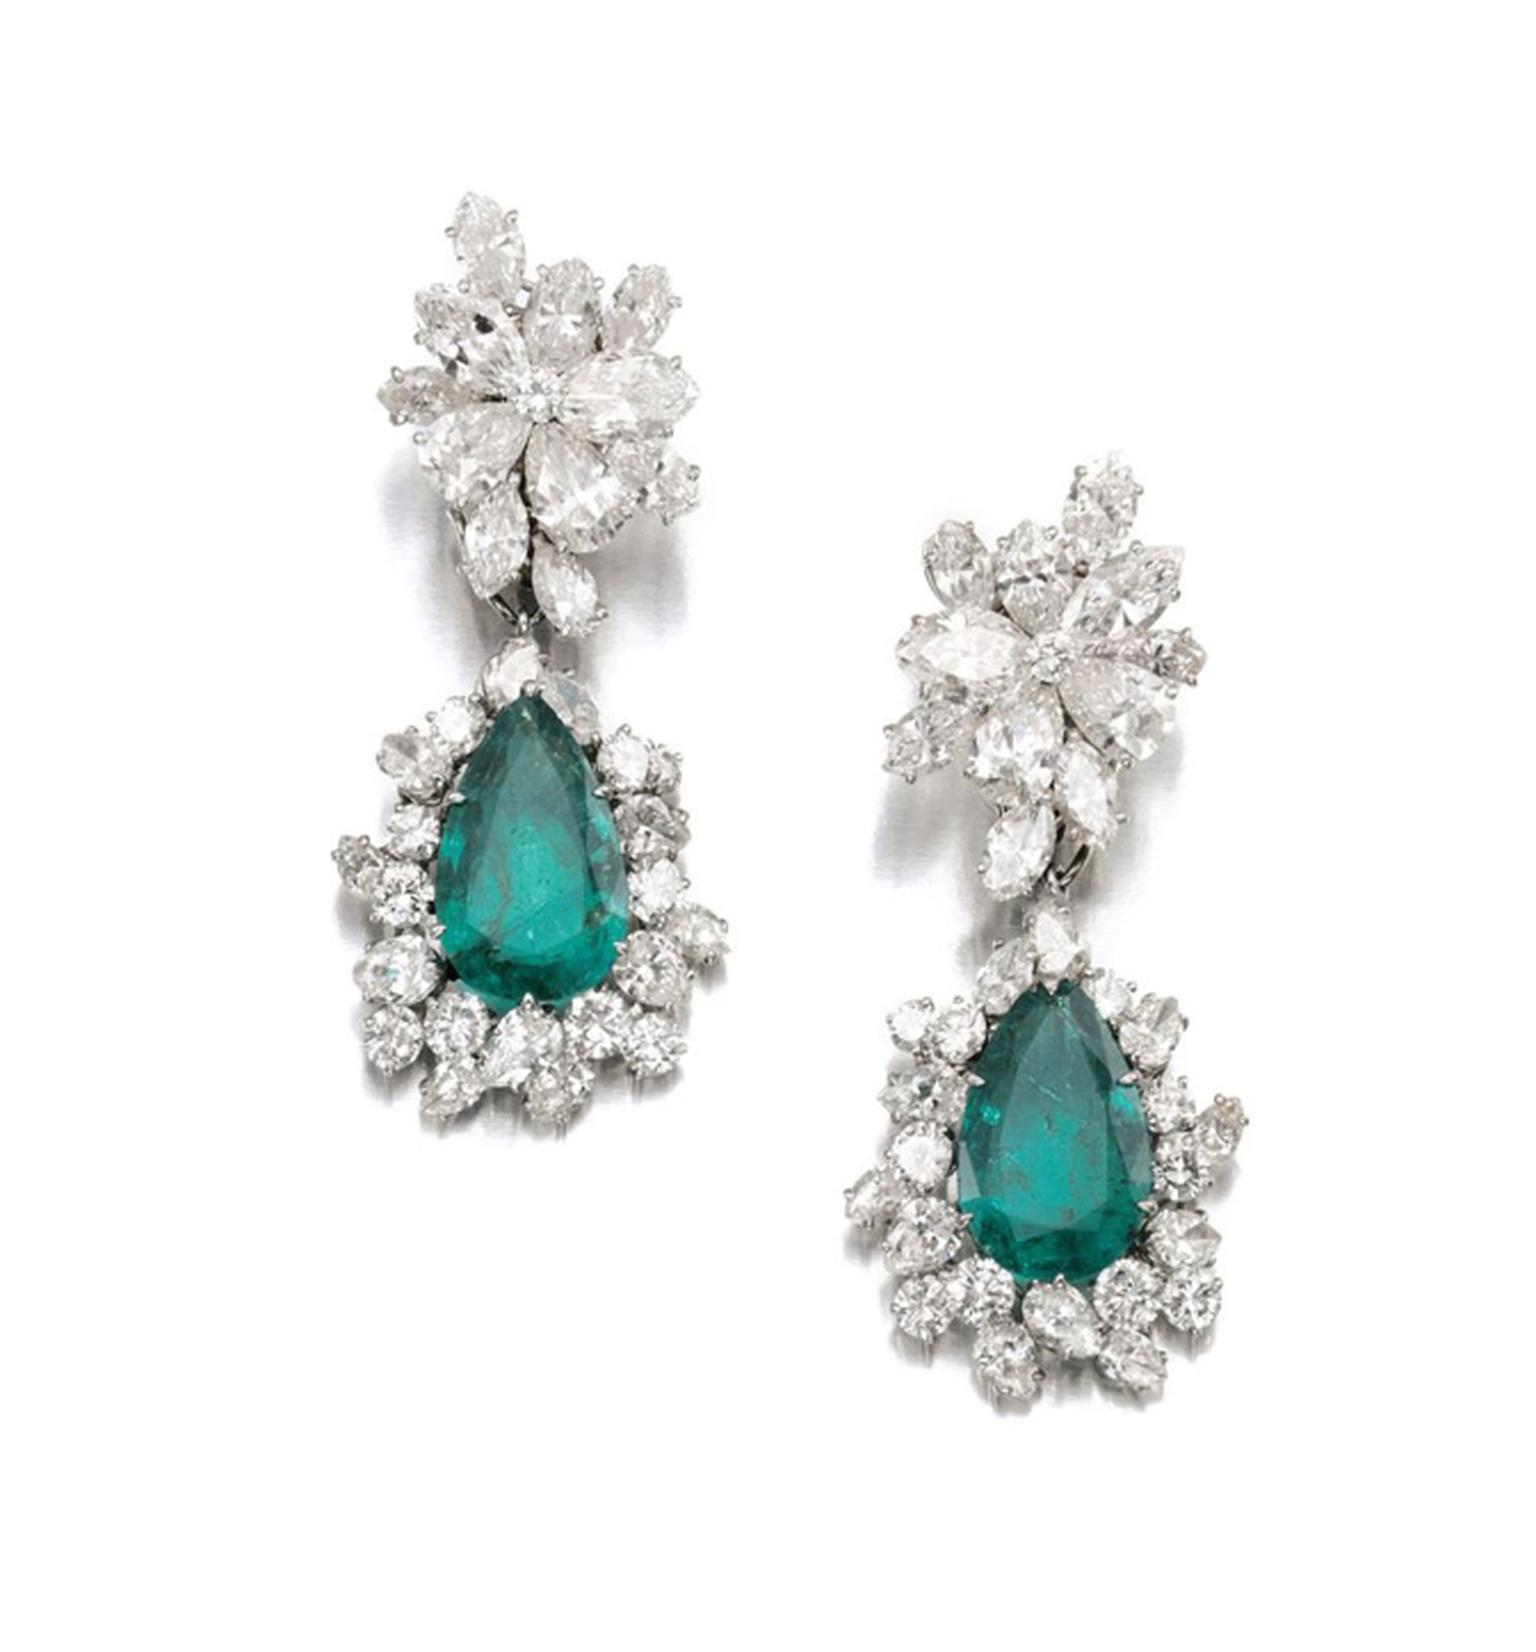 Gina Lollobrigida's emerald and diamond earclips, by Bulgari circa 1964, sold for CHF 293,000 at Sotheby's Geneva in May 2013.